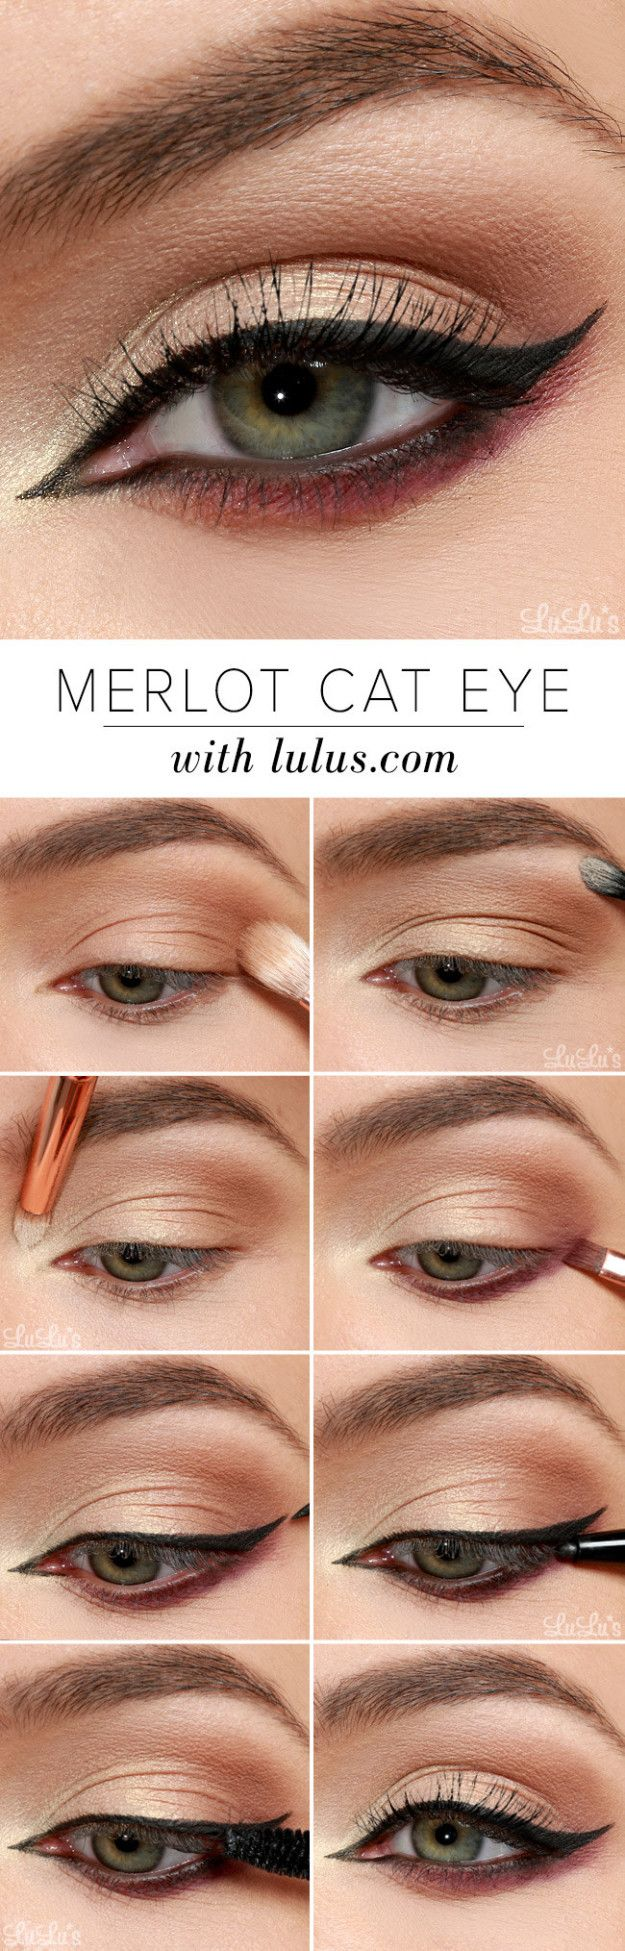 Make a statement with subtle color and winged liner. | 18 Eye Makeup Cheat Sheets If You Don't Know WTF You're Doing